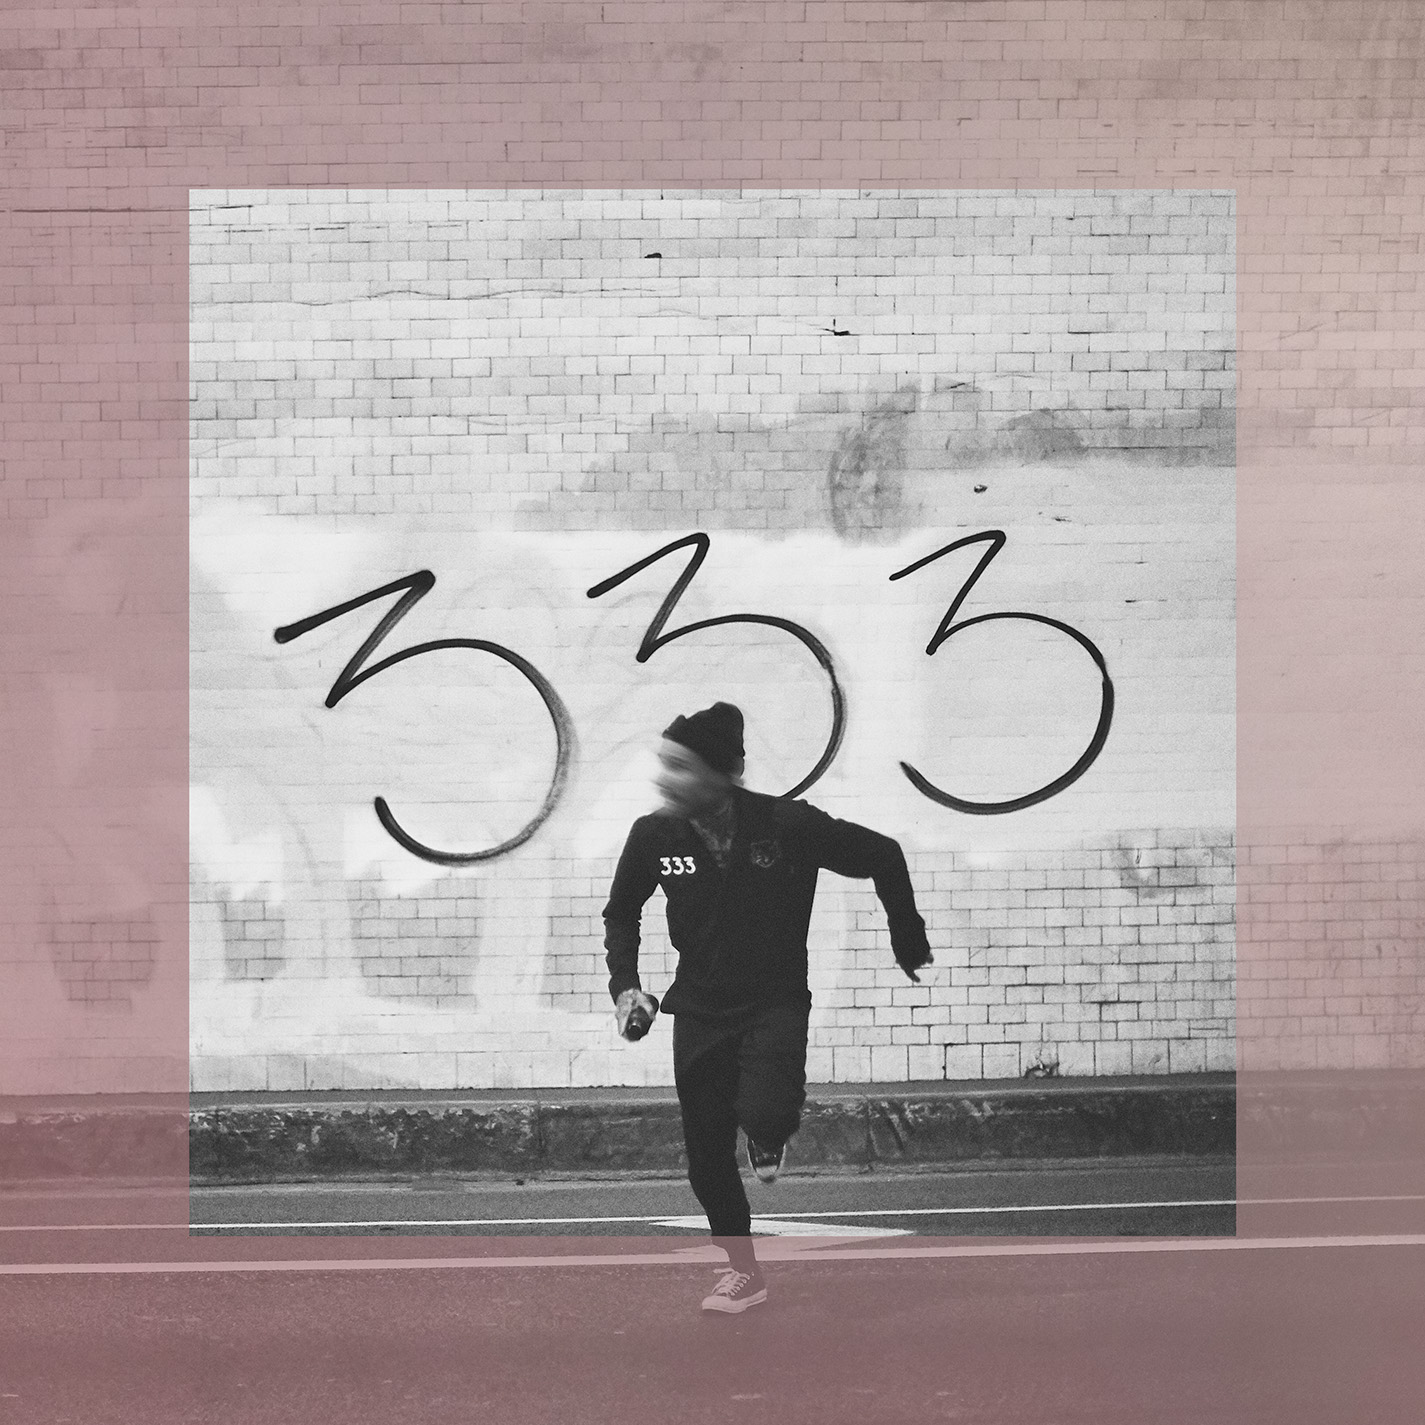 Fever 333 Numb333rs